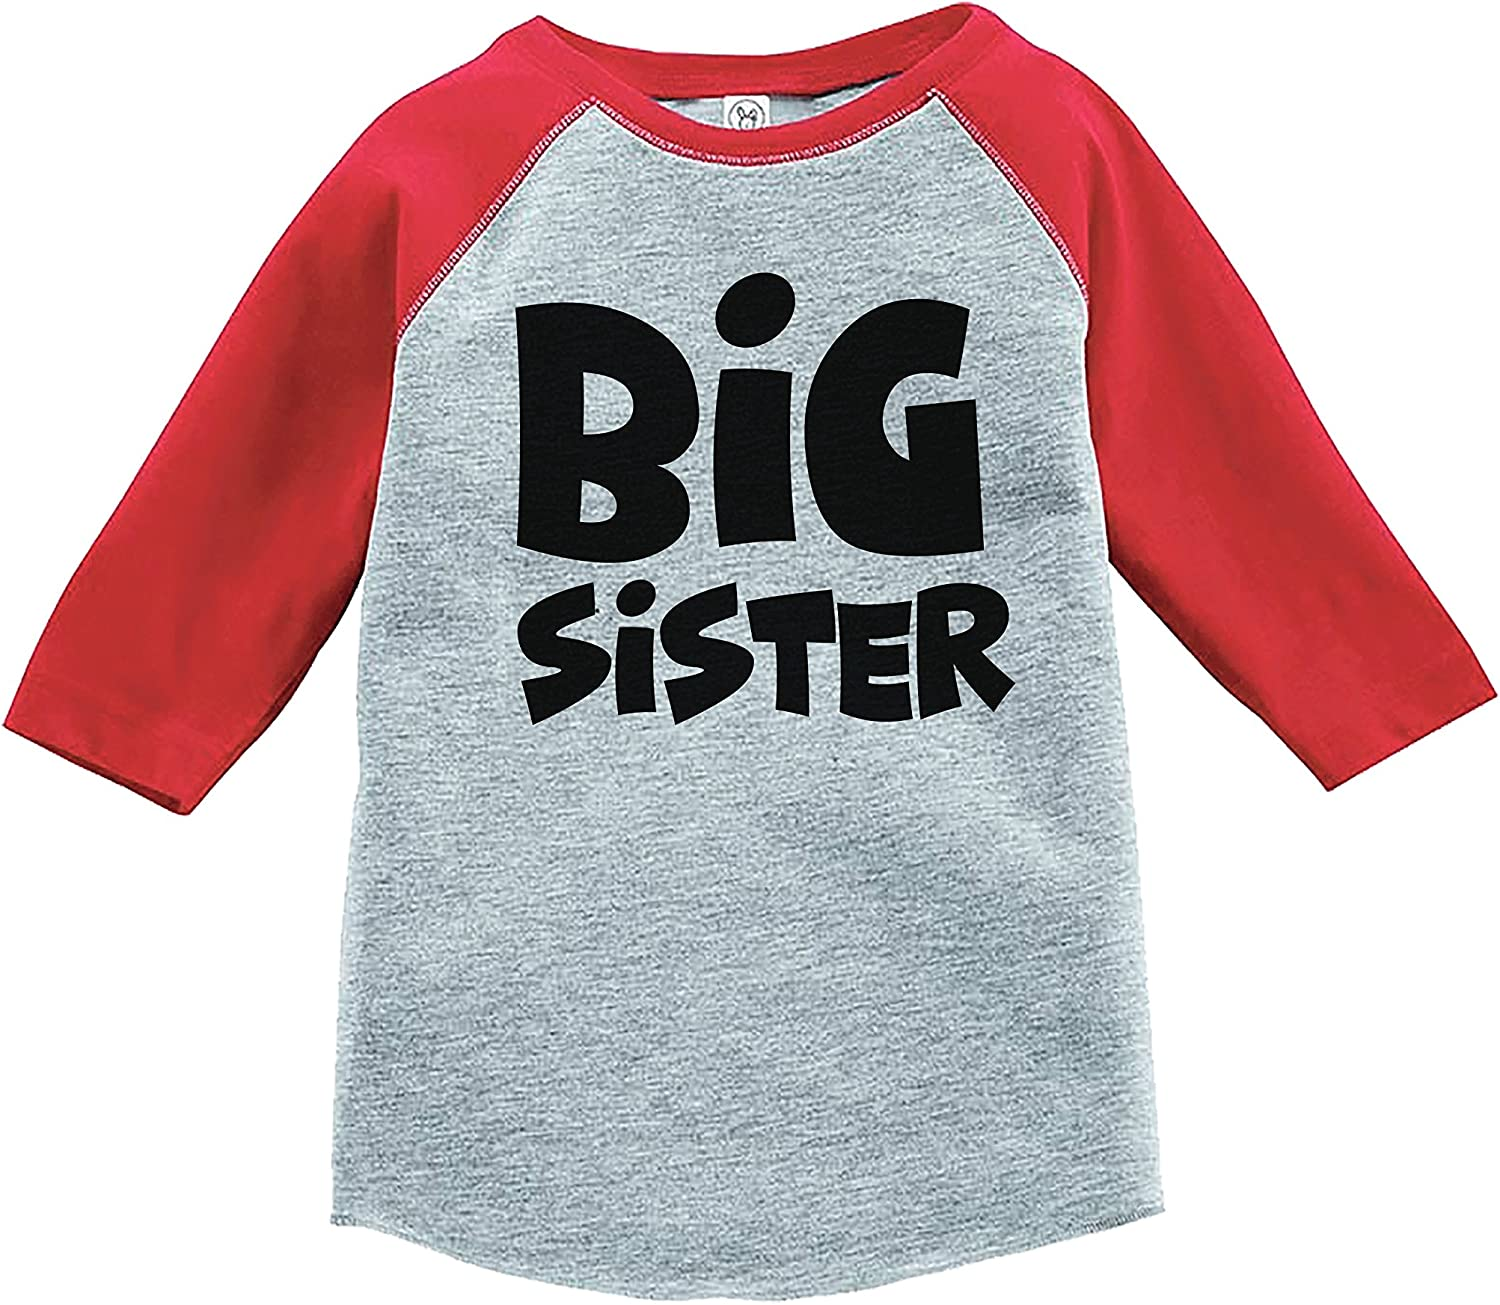 7 ate 9 Apparel Girls Big Sister Red Baseball Tee